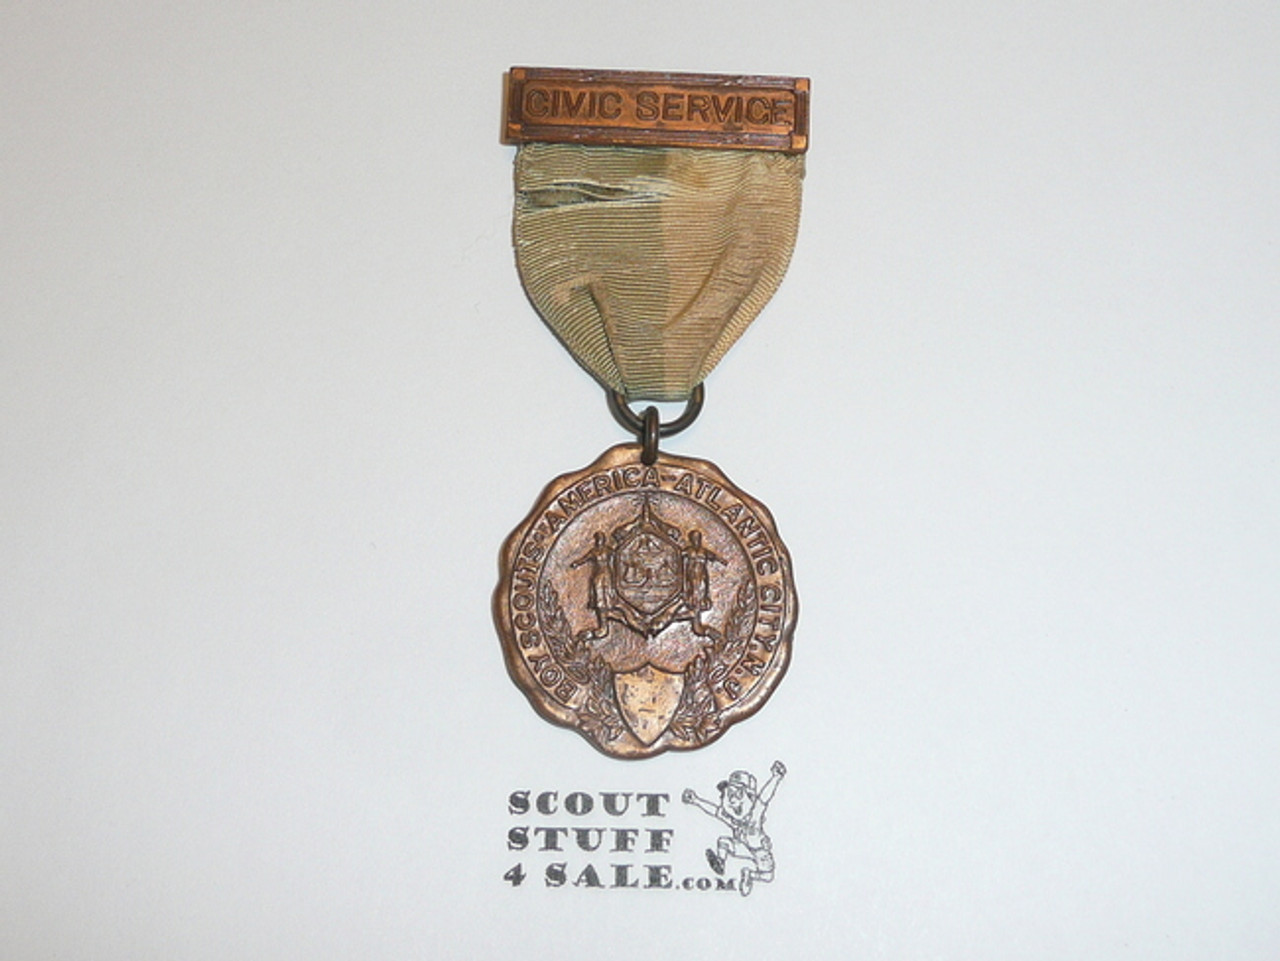 Old Atlantic City Boy Scouts of America Civic Service Medal, Ribbon Faded and Worn